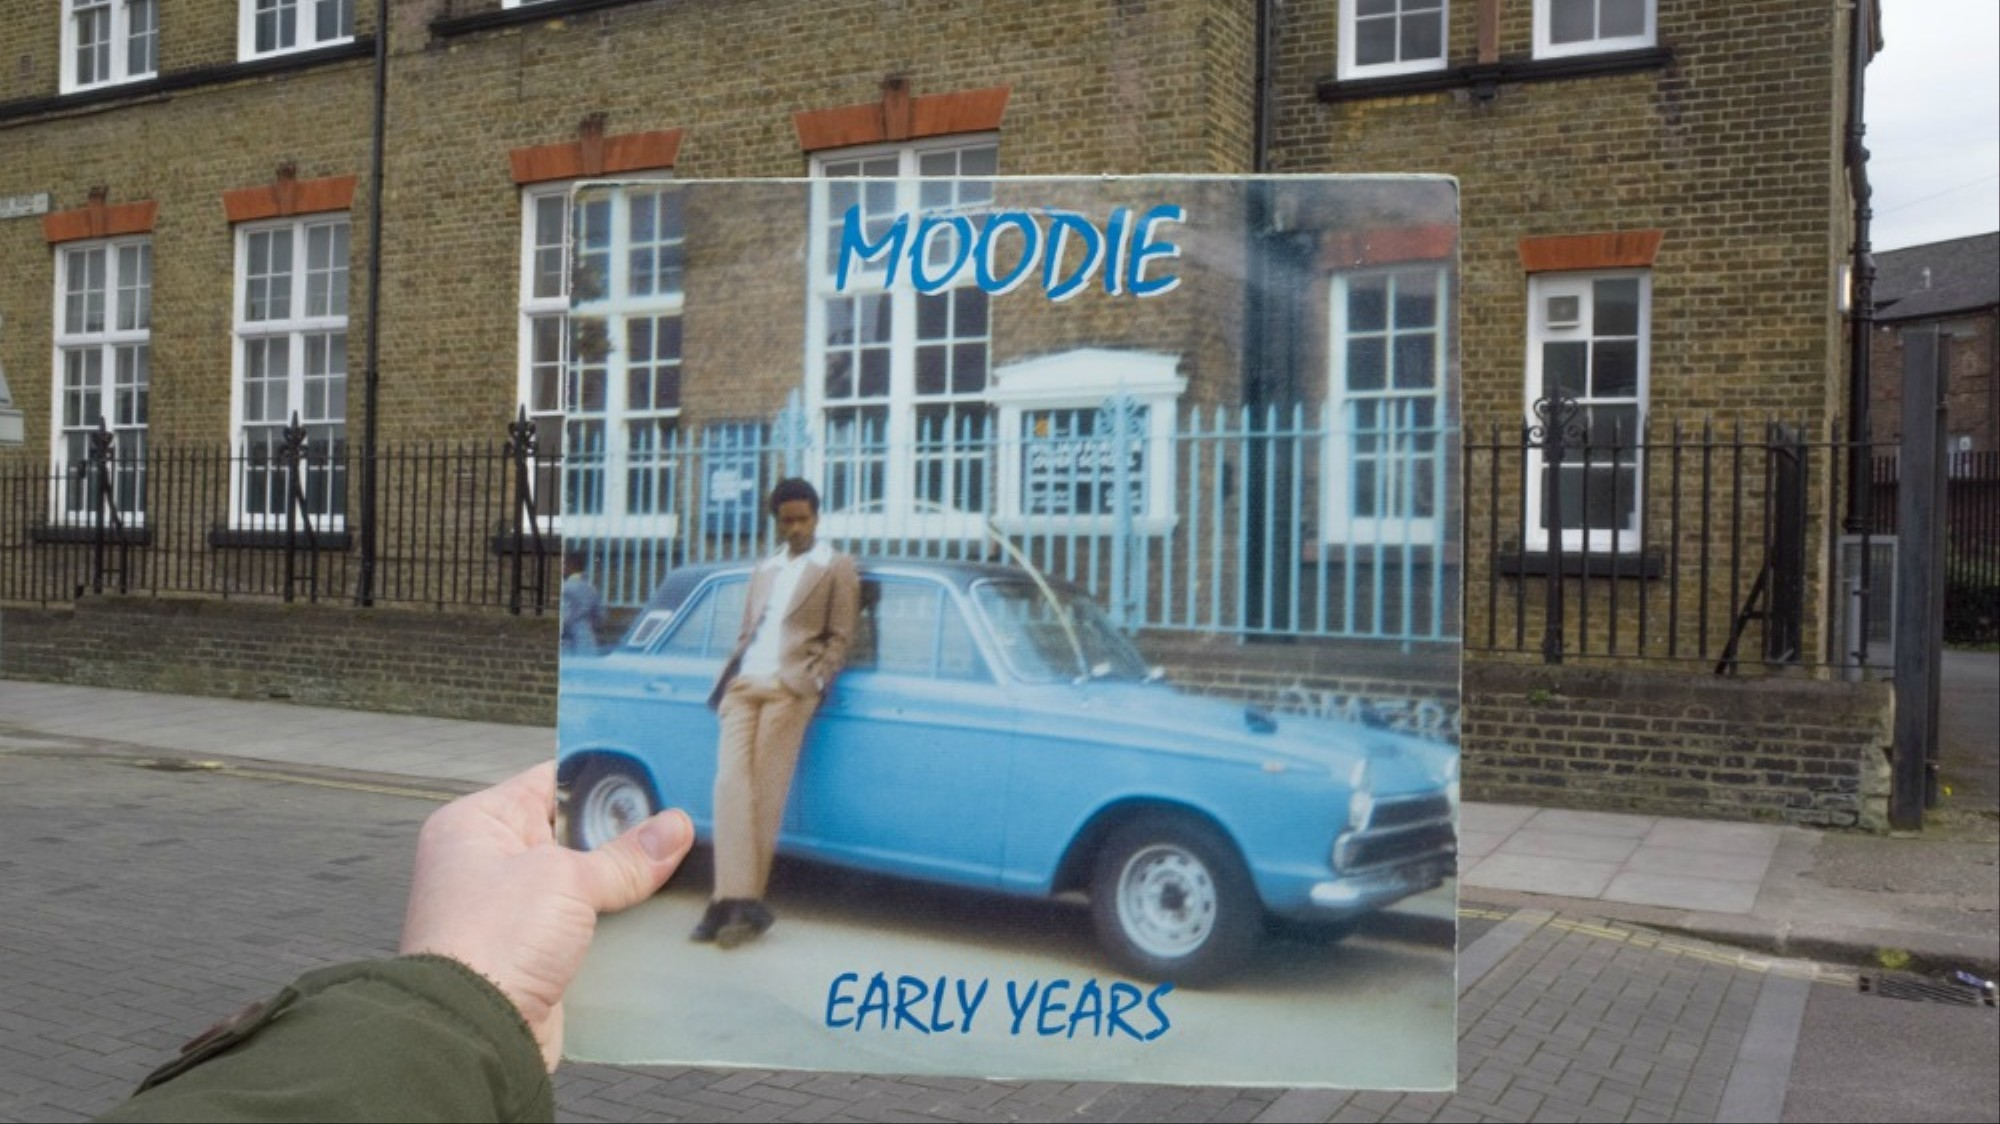 Alex Bartsch Reshoots Classic London Reggae Albums in Their